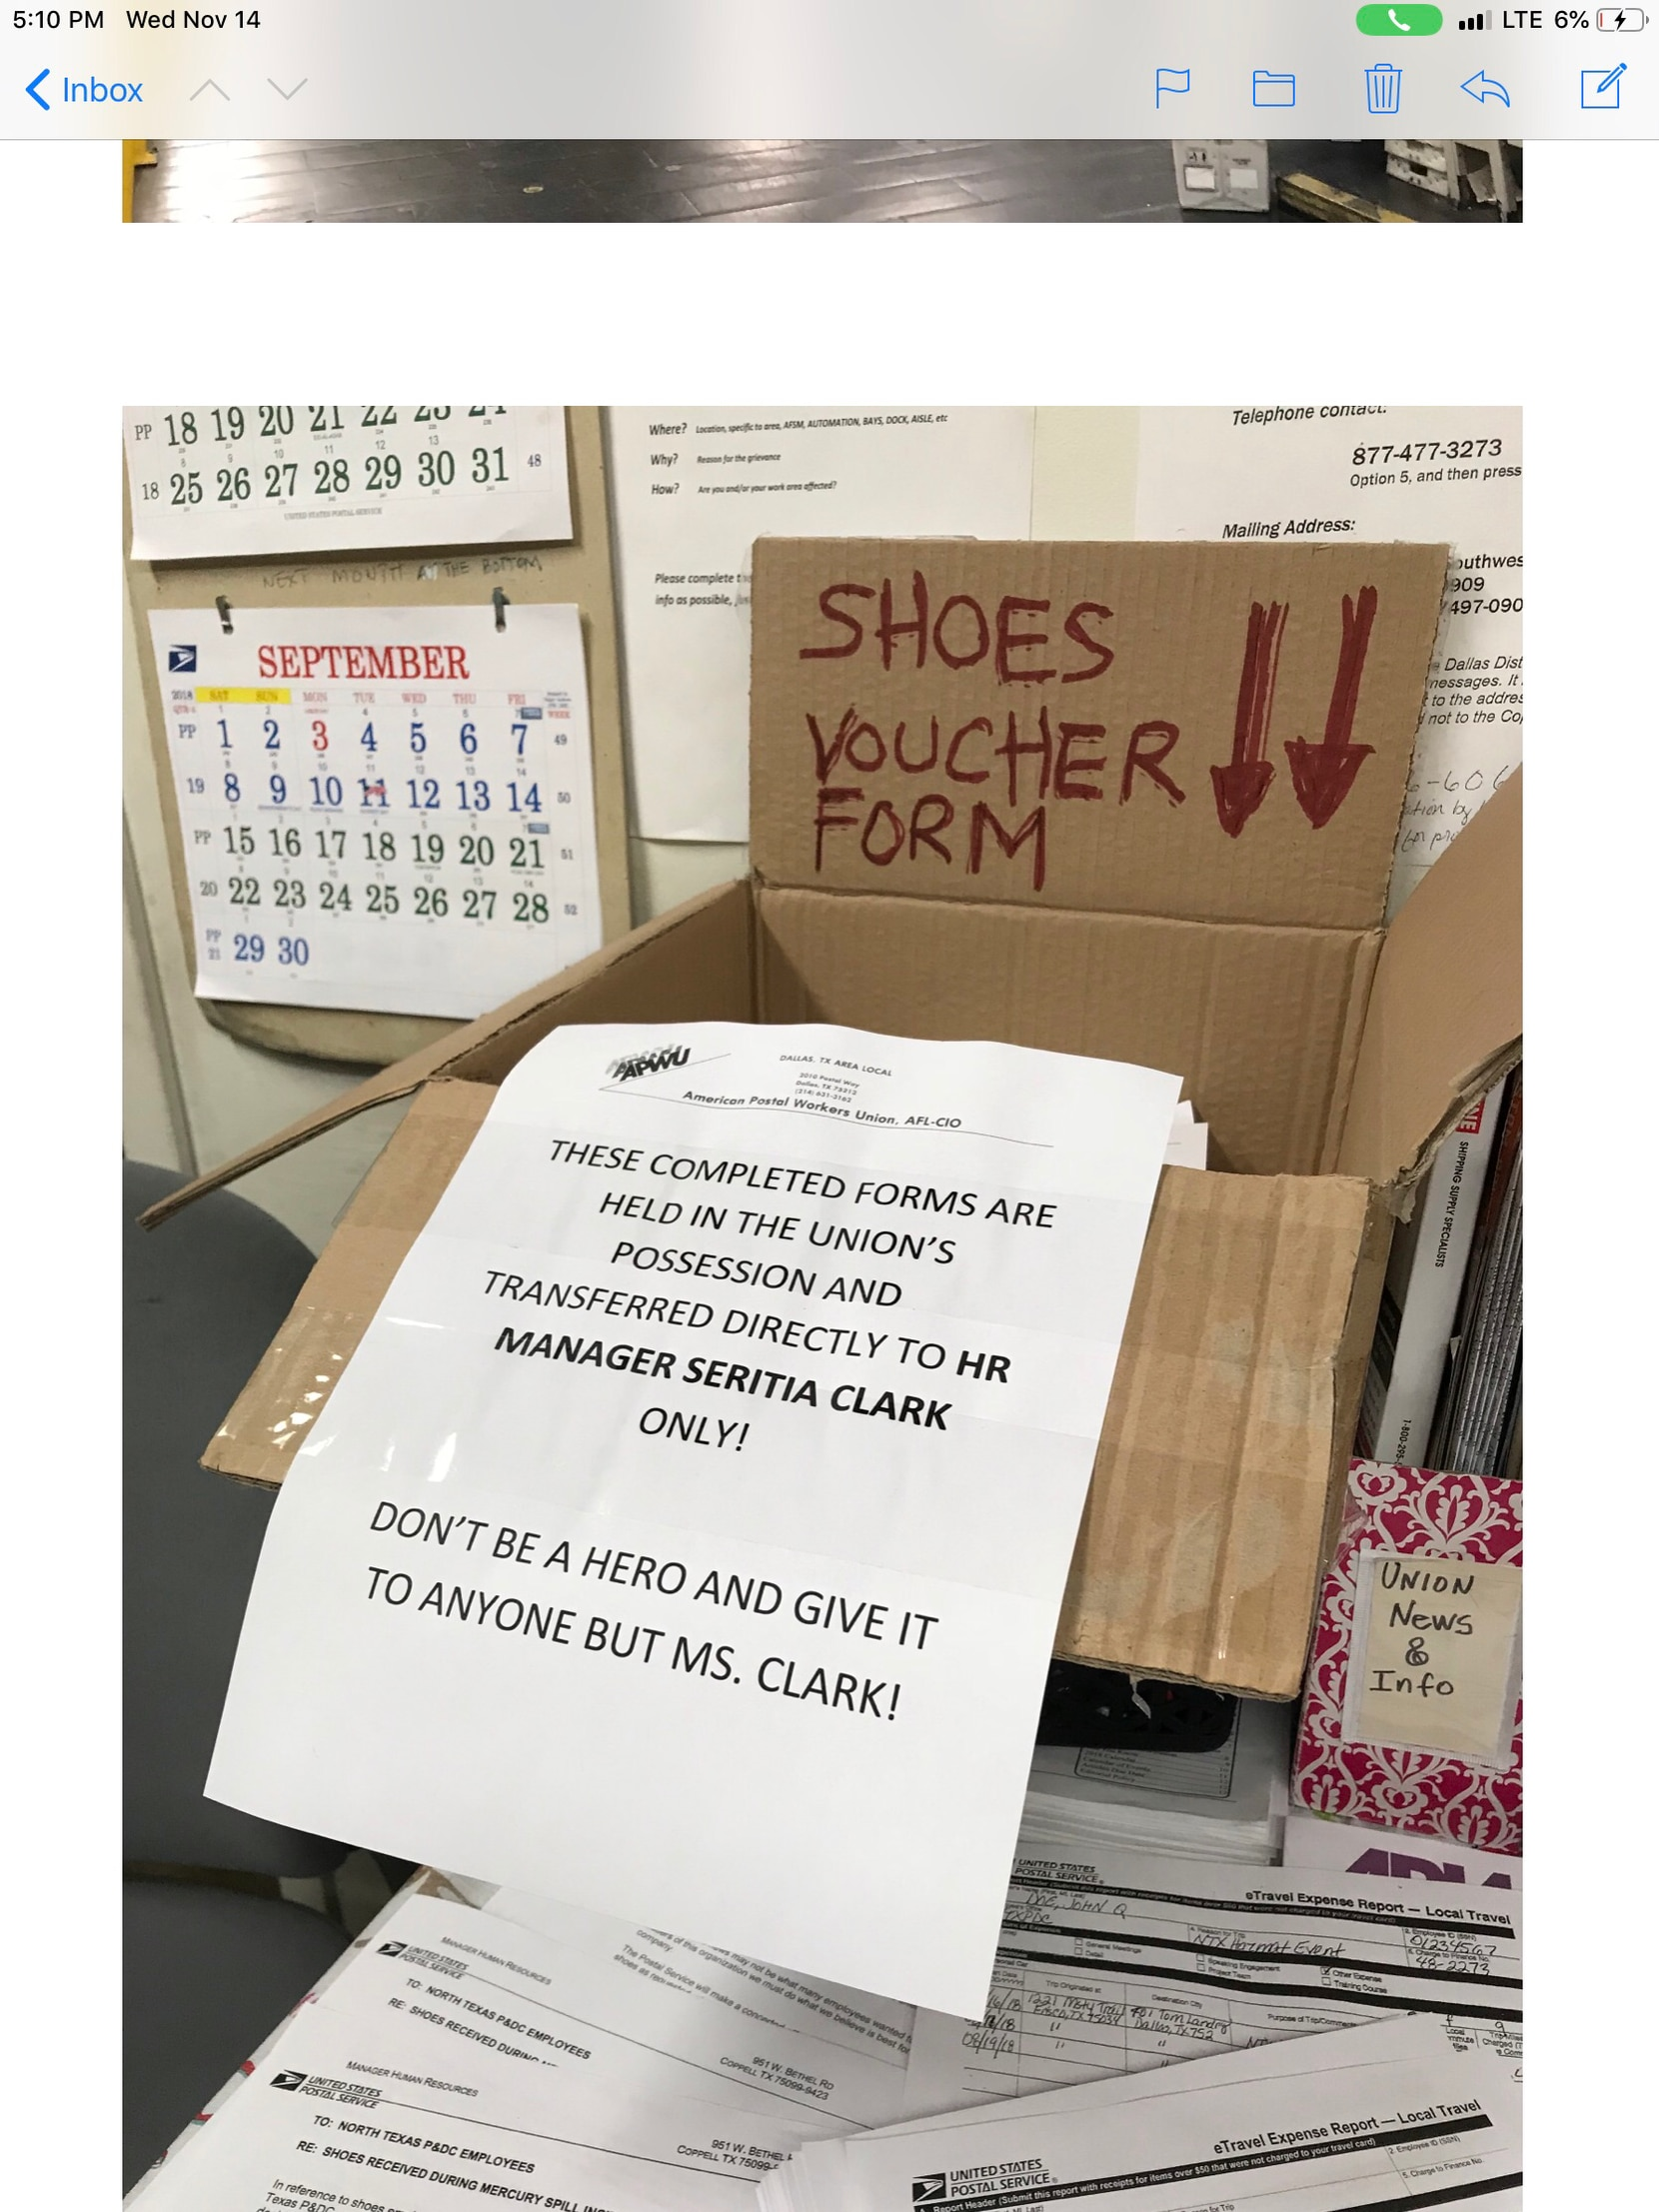 Employees at the North Texas mail processing center in Coppell were ordered to turn in shoes they wore a day after a 2018 mercury spill. Forms were collected in which workers declared the value of their shoes.